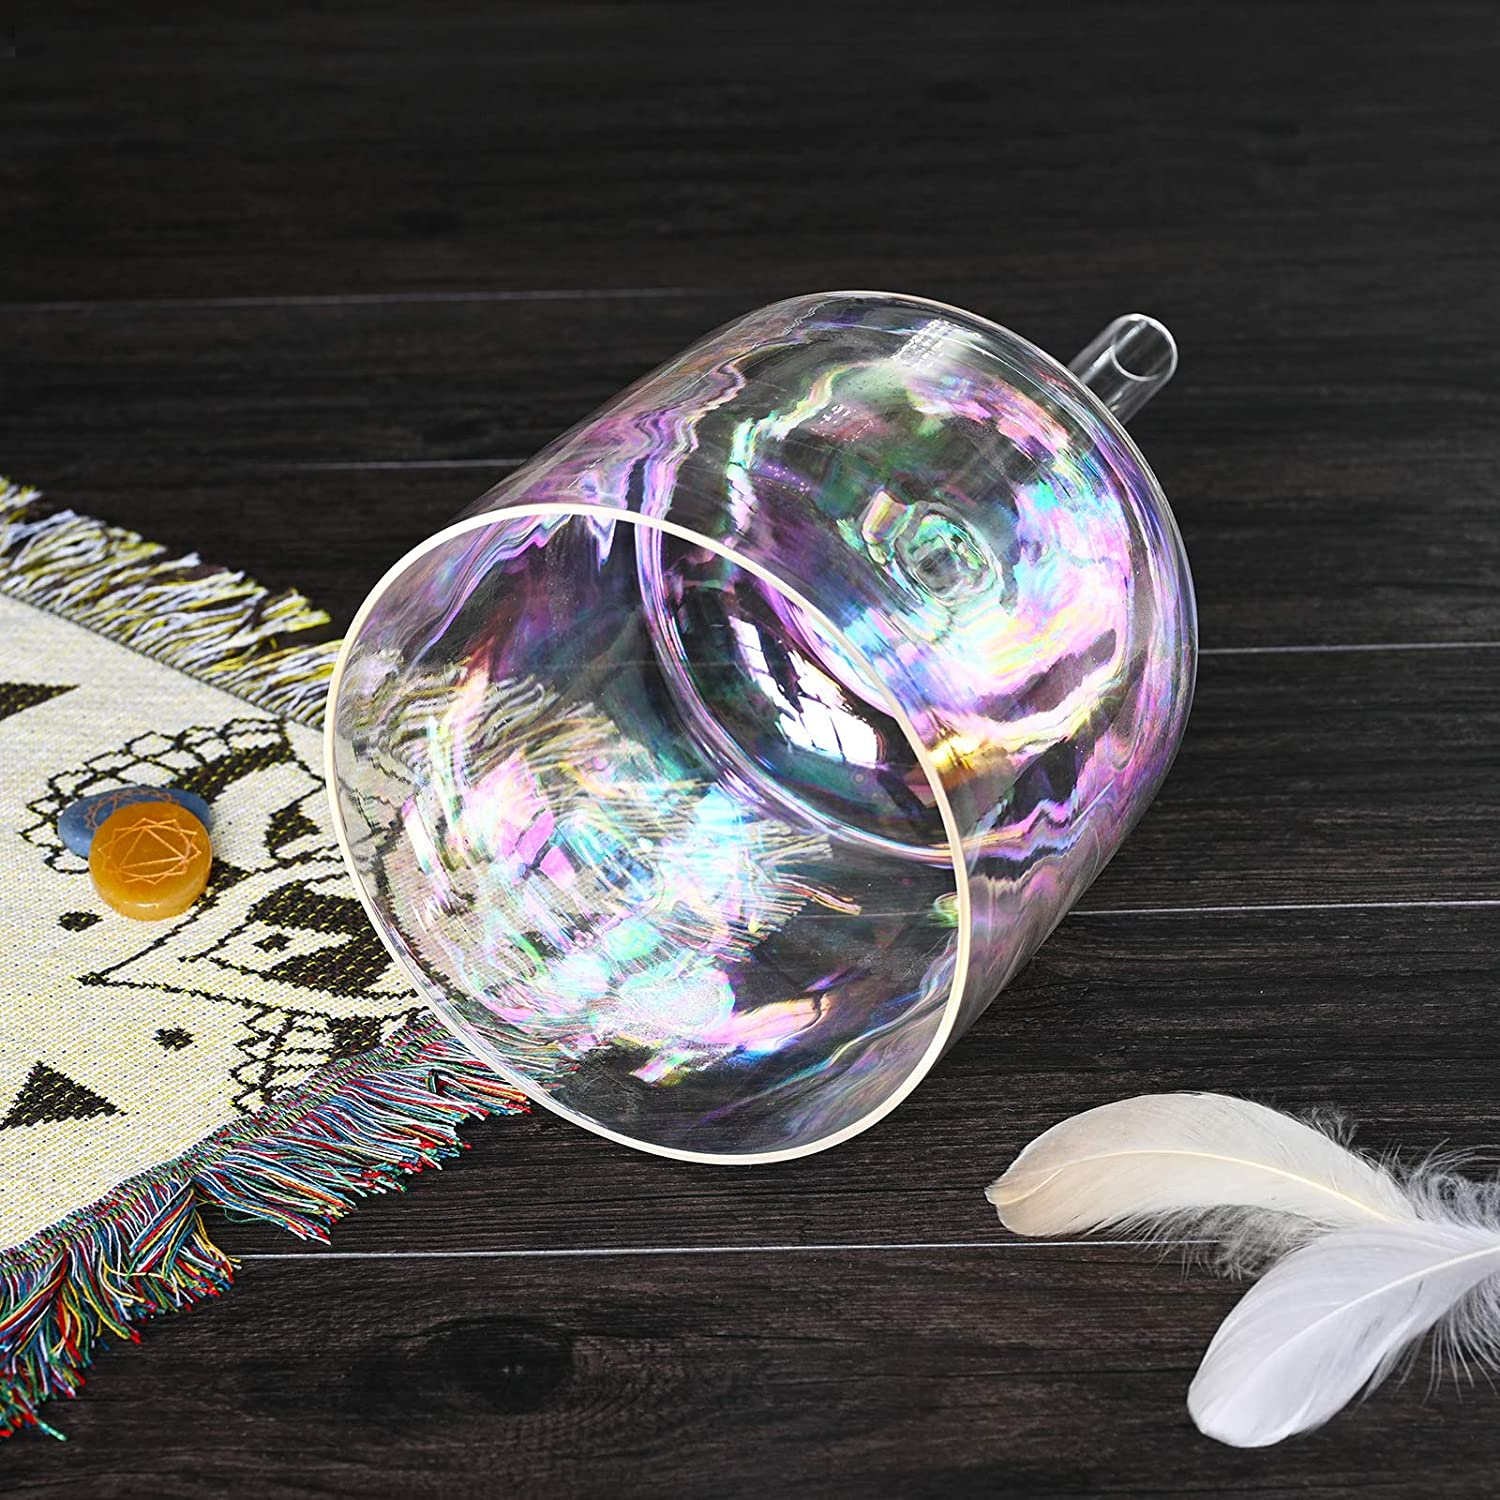 CVNC 5 Inch A Note Cosmic Light Hollow Handle Clear Quartz Crystal Singing Bowl Sound Music Instrument